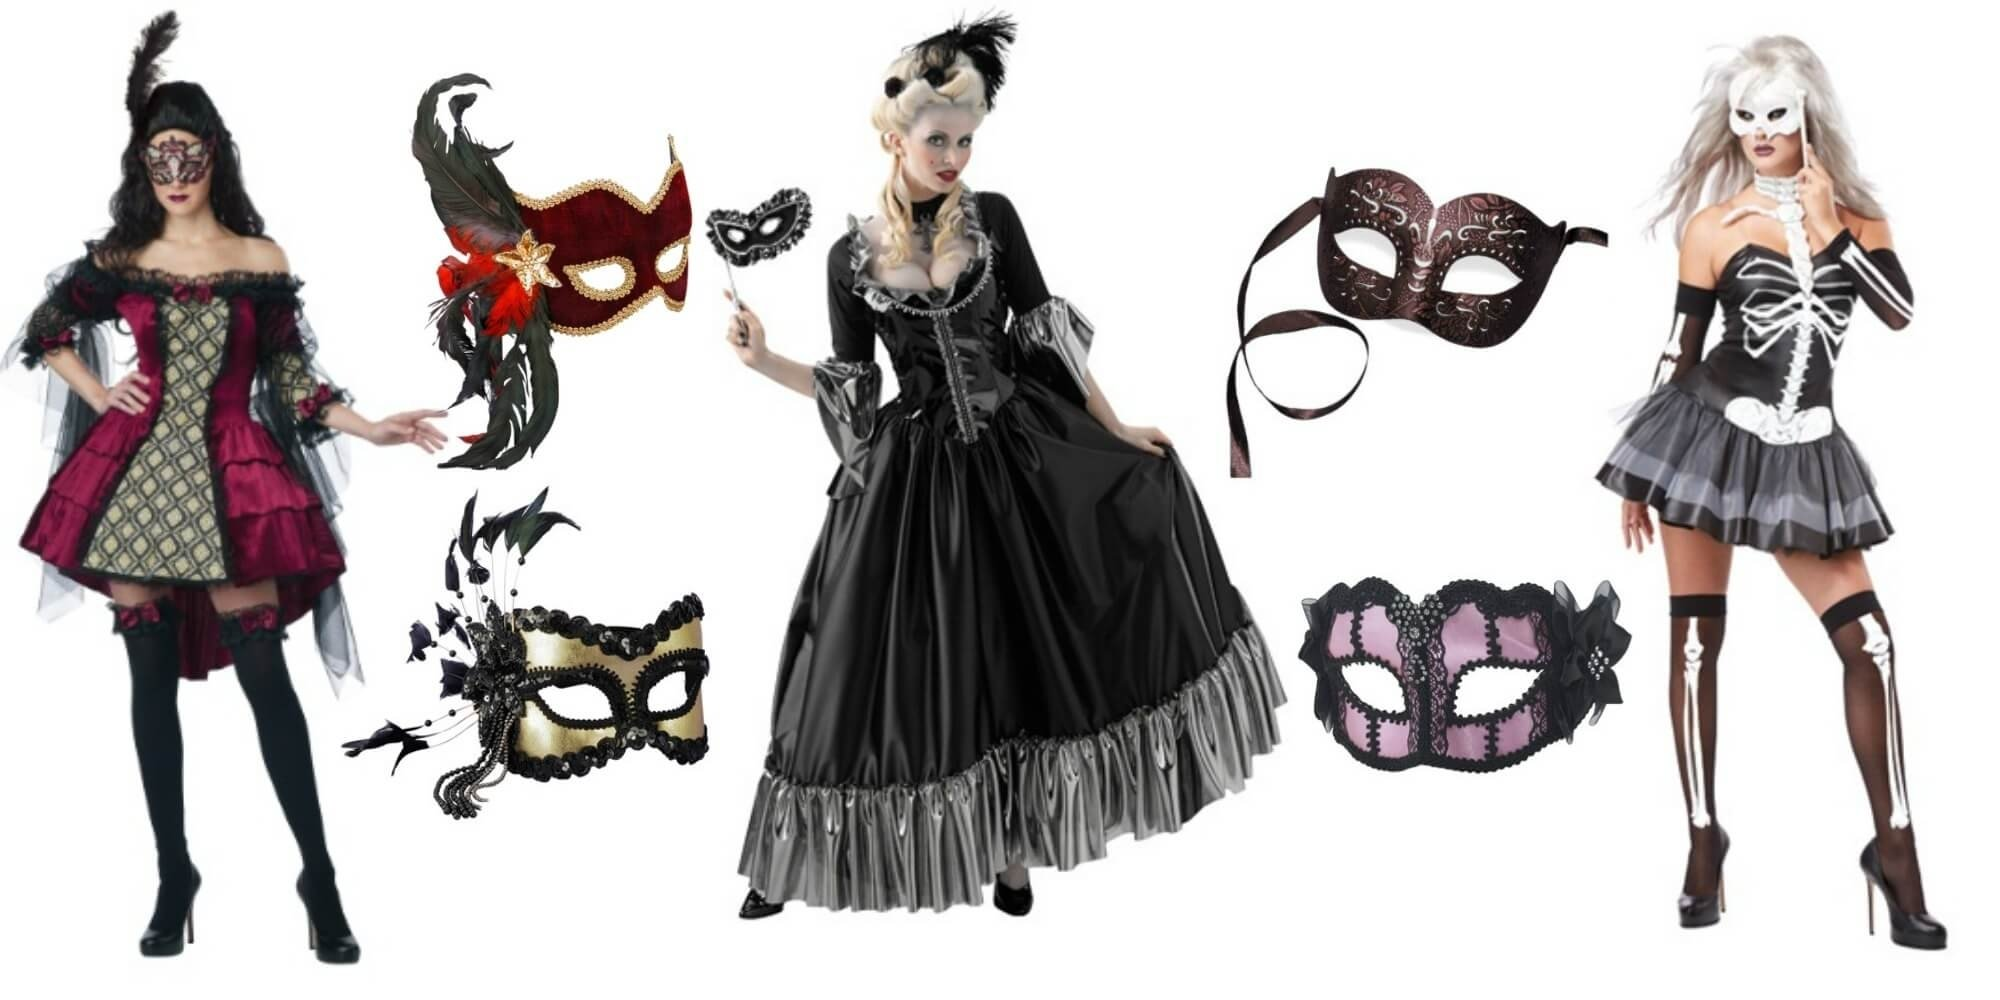 10 Lovable Masquerade Costume Ideas For Women sexy costumes for every event halloween costumes blog 2020